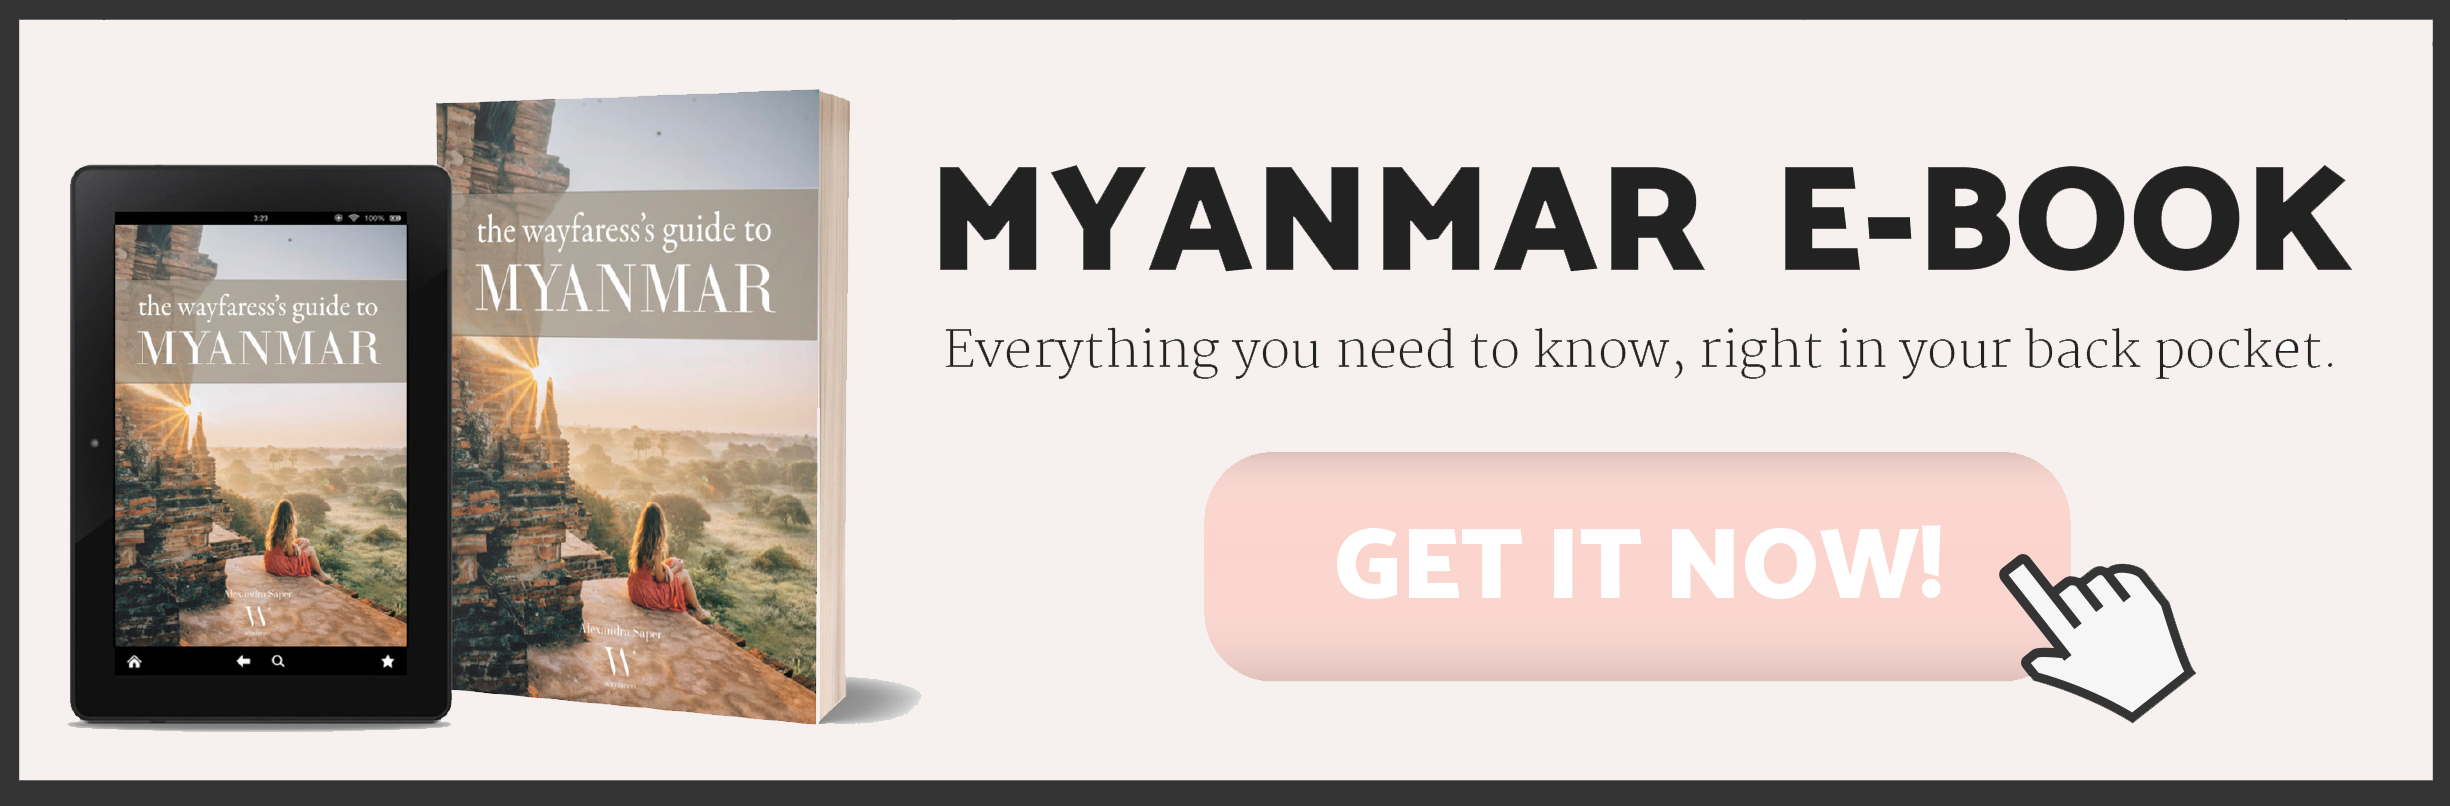 MYANMAR E-BOOK-main-banner-ad-color.png